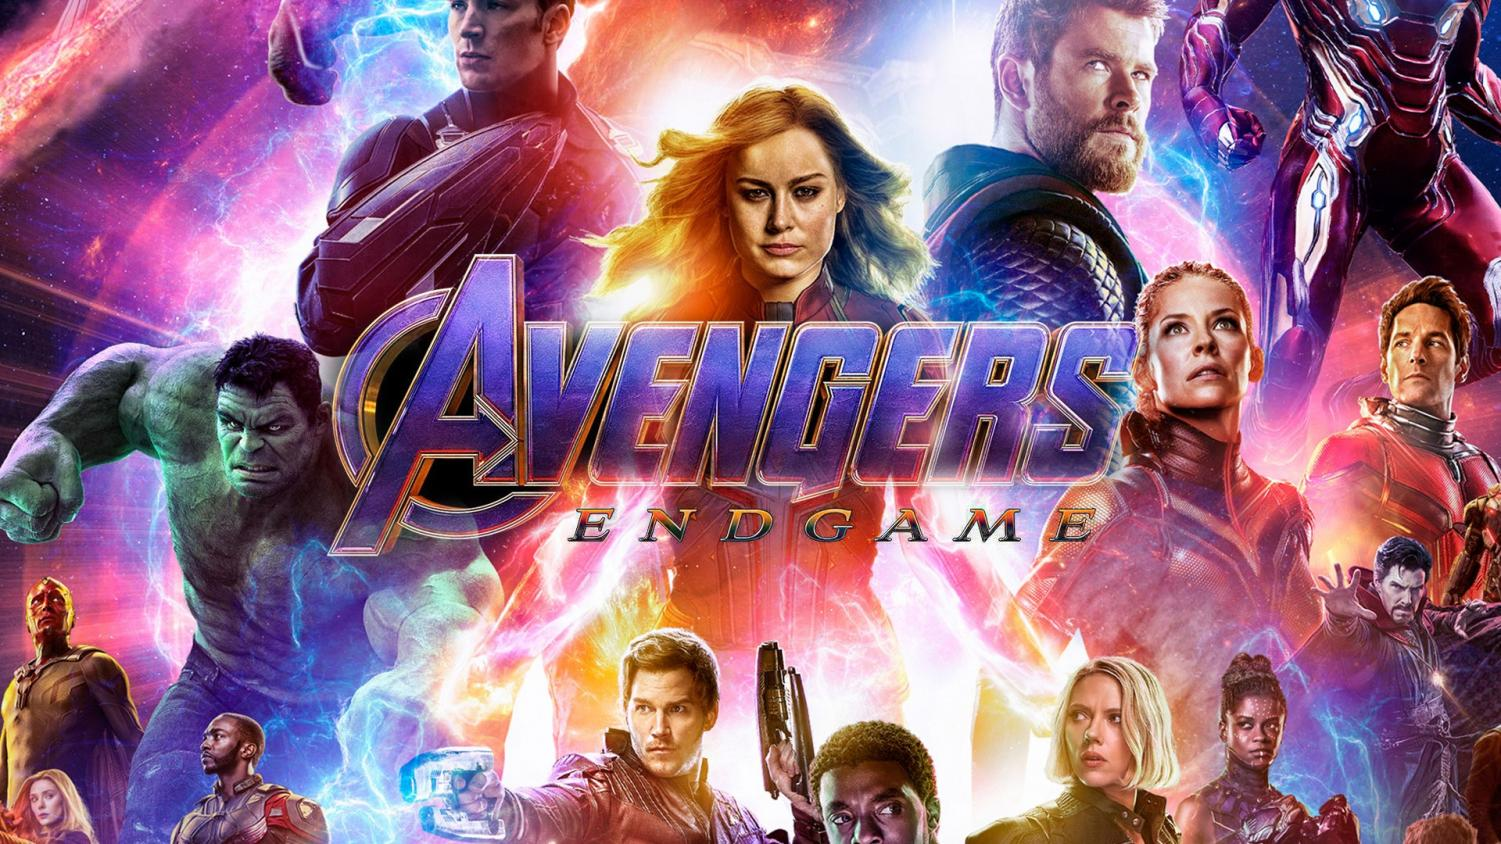 Avengers: Endgame will bring together all remaining characters to defeat Thanos and avenge their fallen friends.